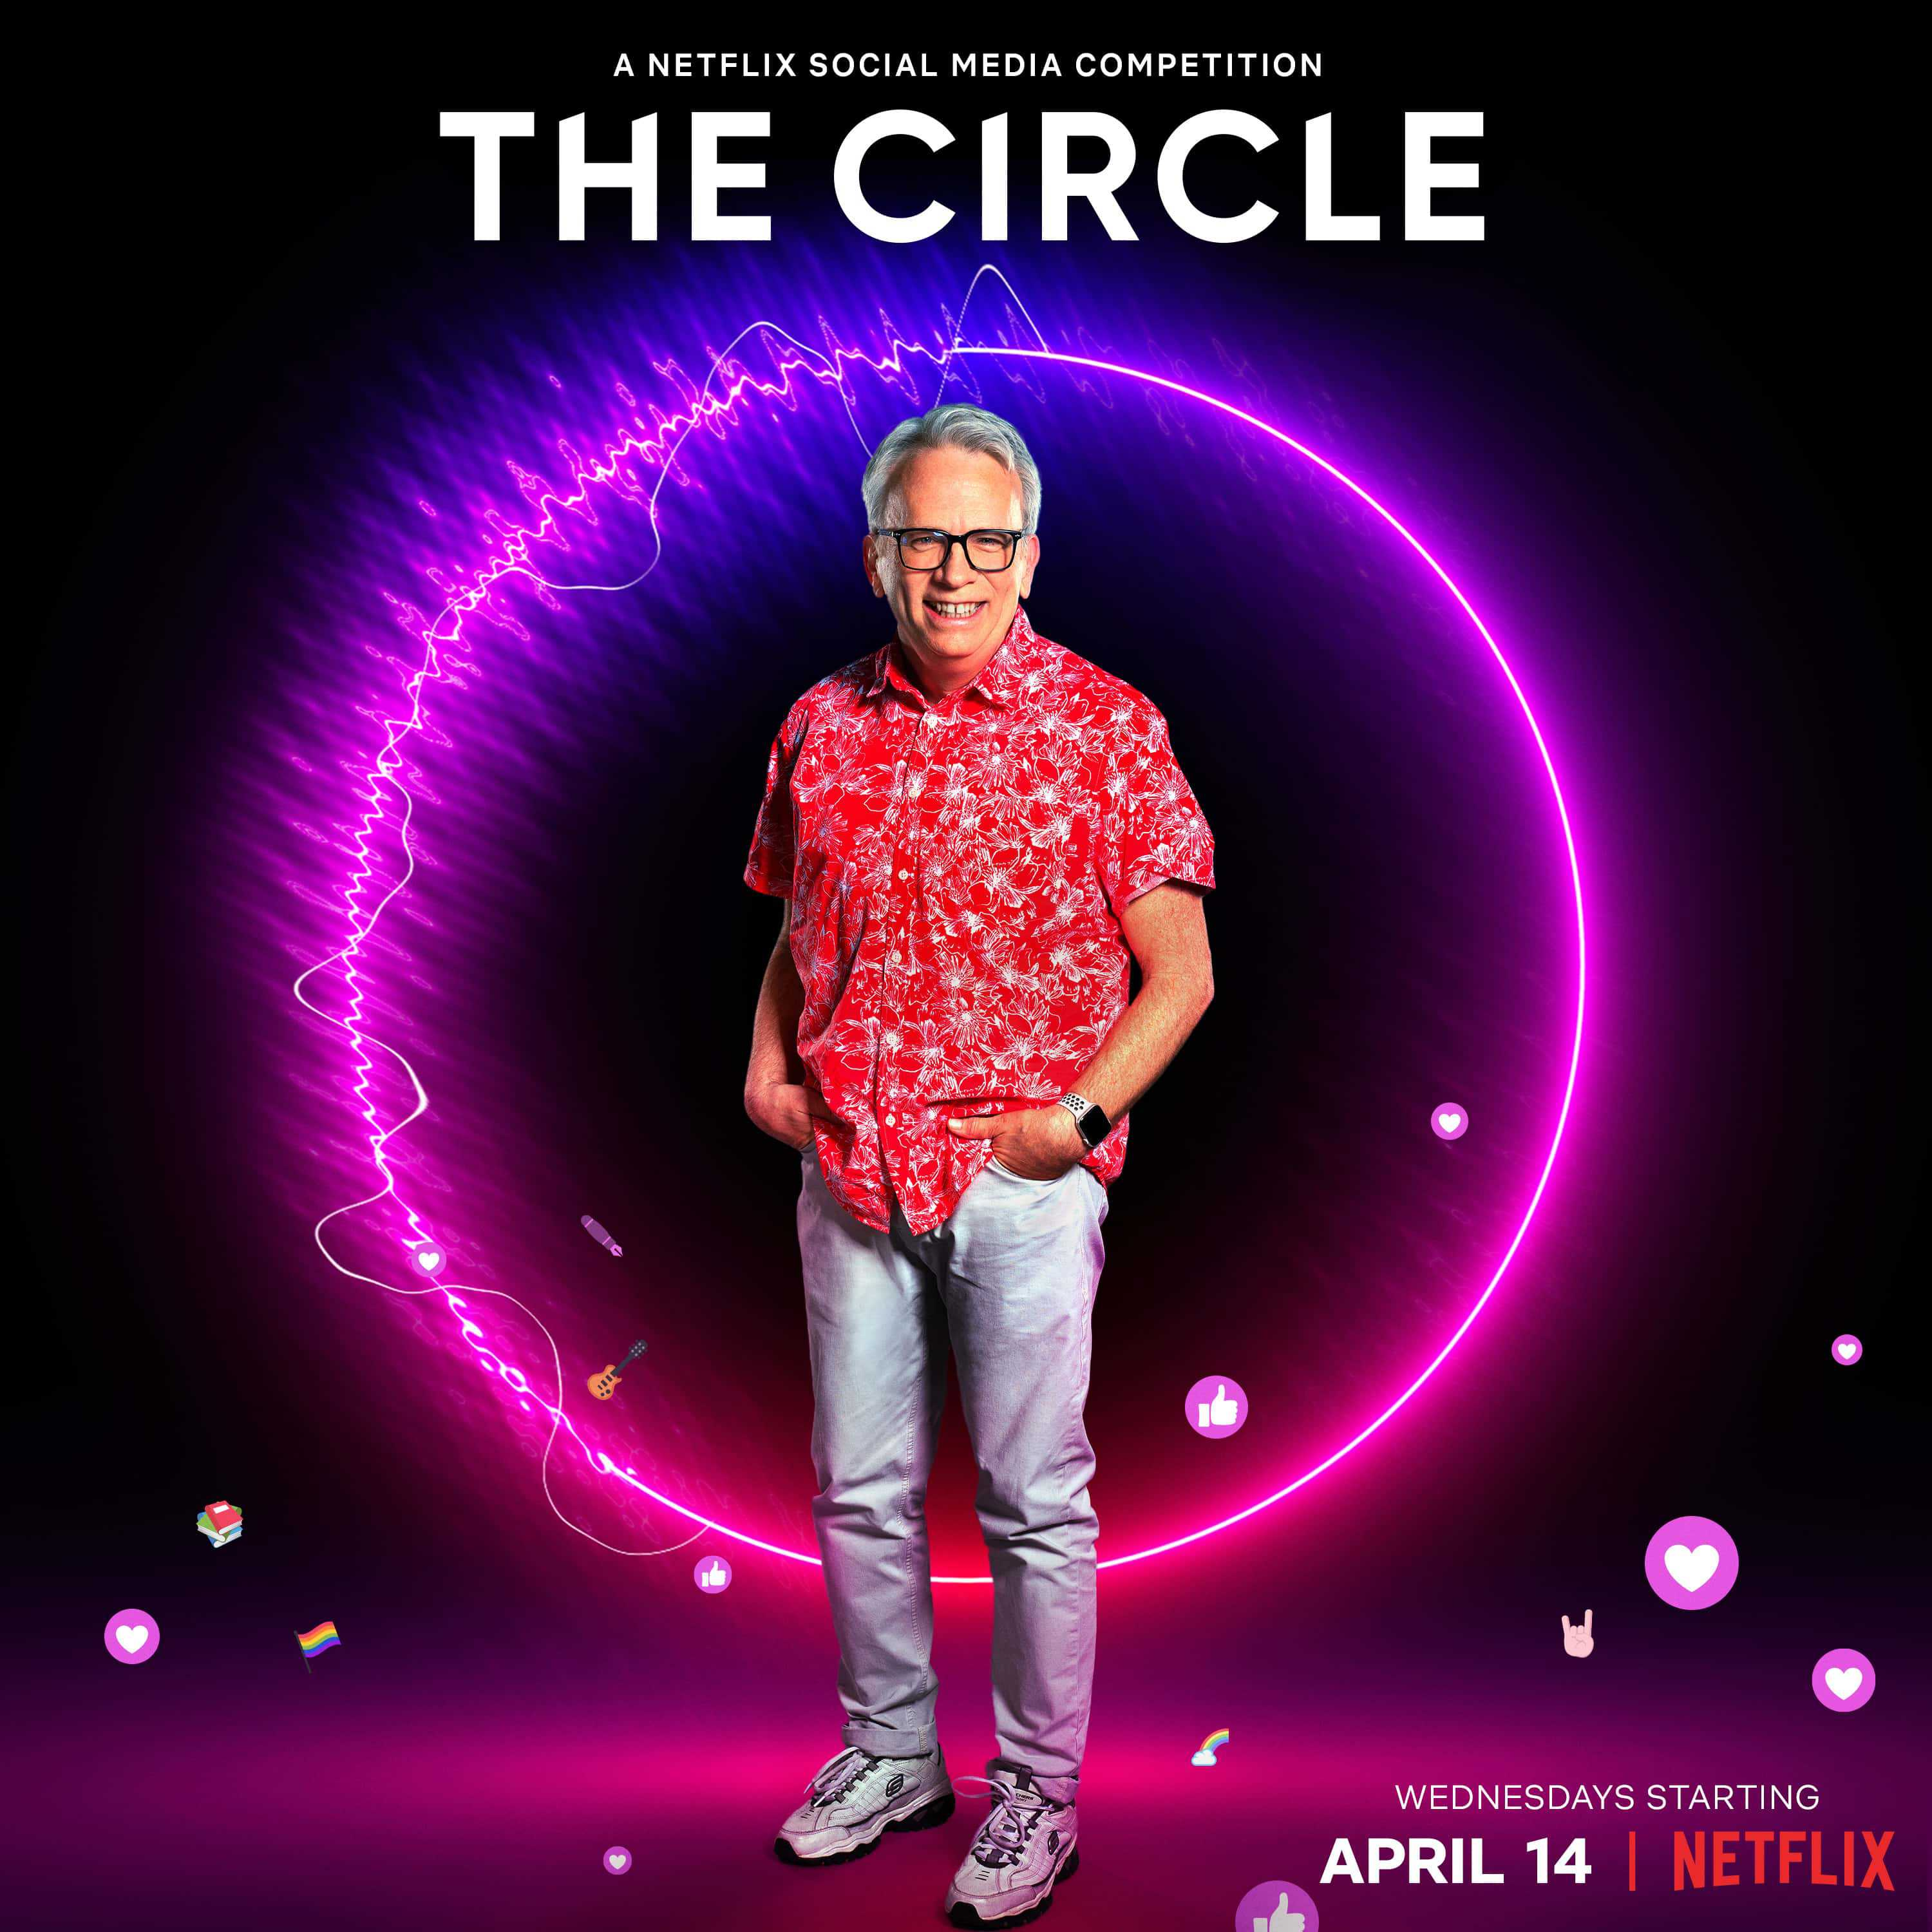 Lee in promotional material for The Circle Season 2